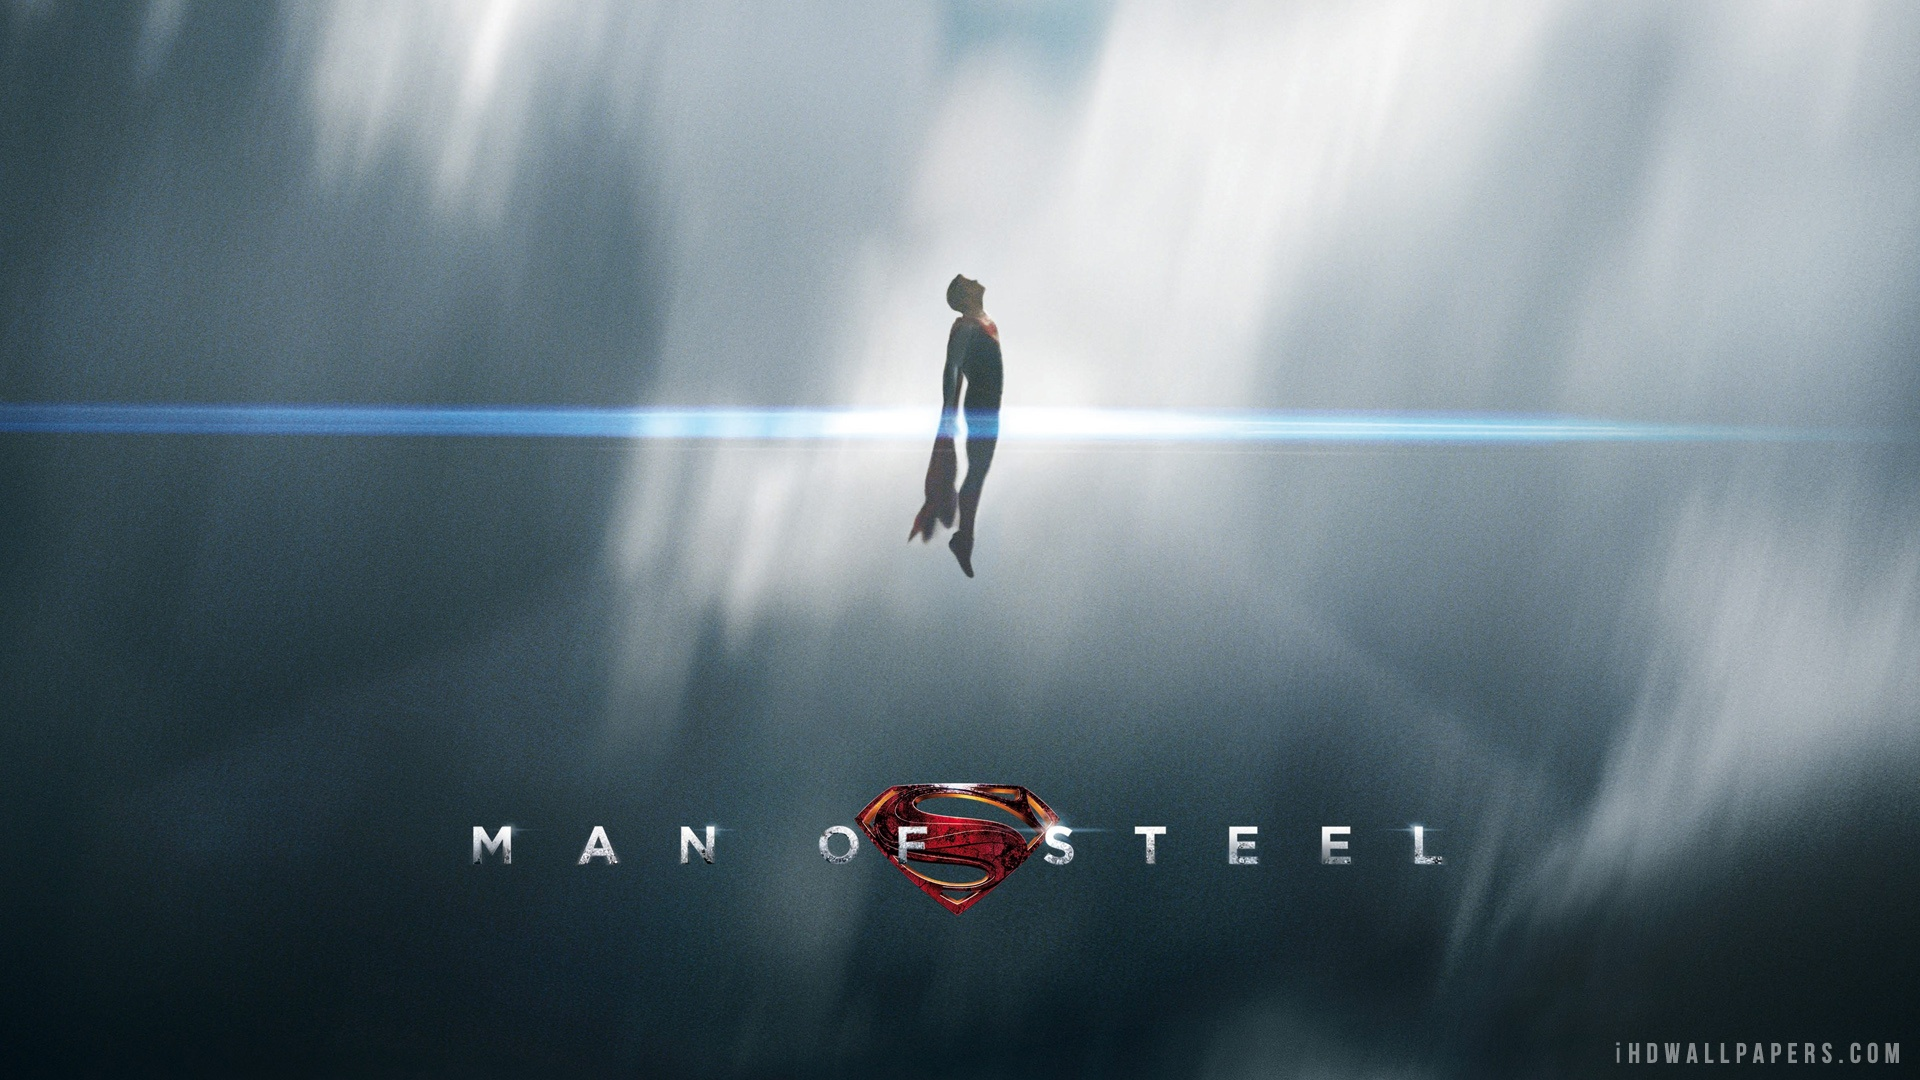 Man of Steel 2 HD Wallpaper   iHD Wallpapers 1920x1080